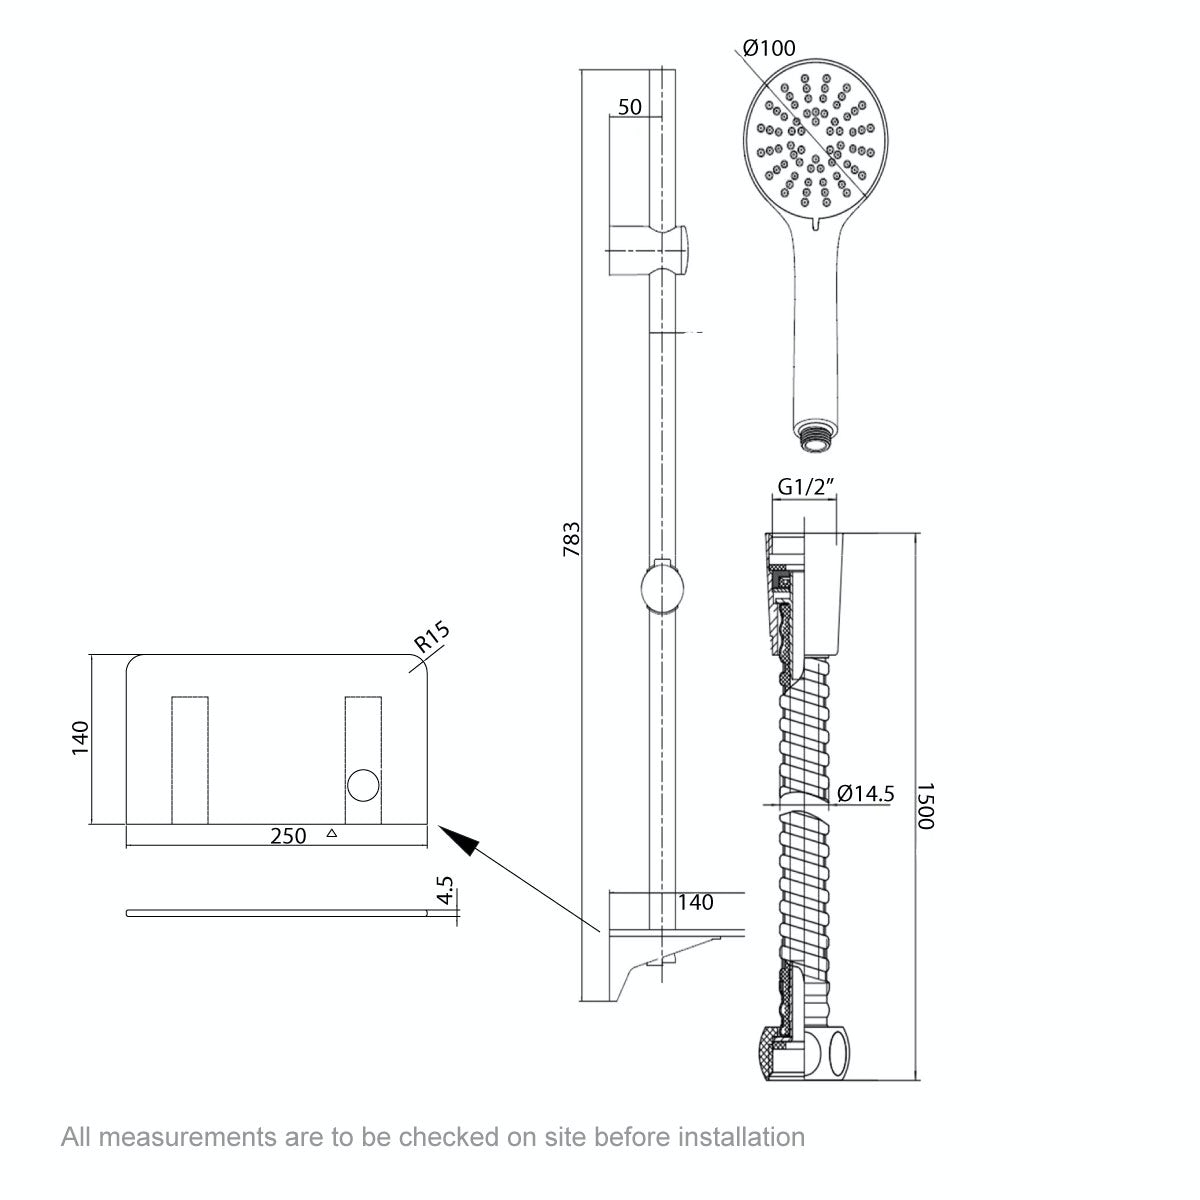 Dimensions for Orchard Pure sliding shower rail and shelf kit